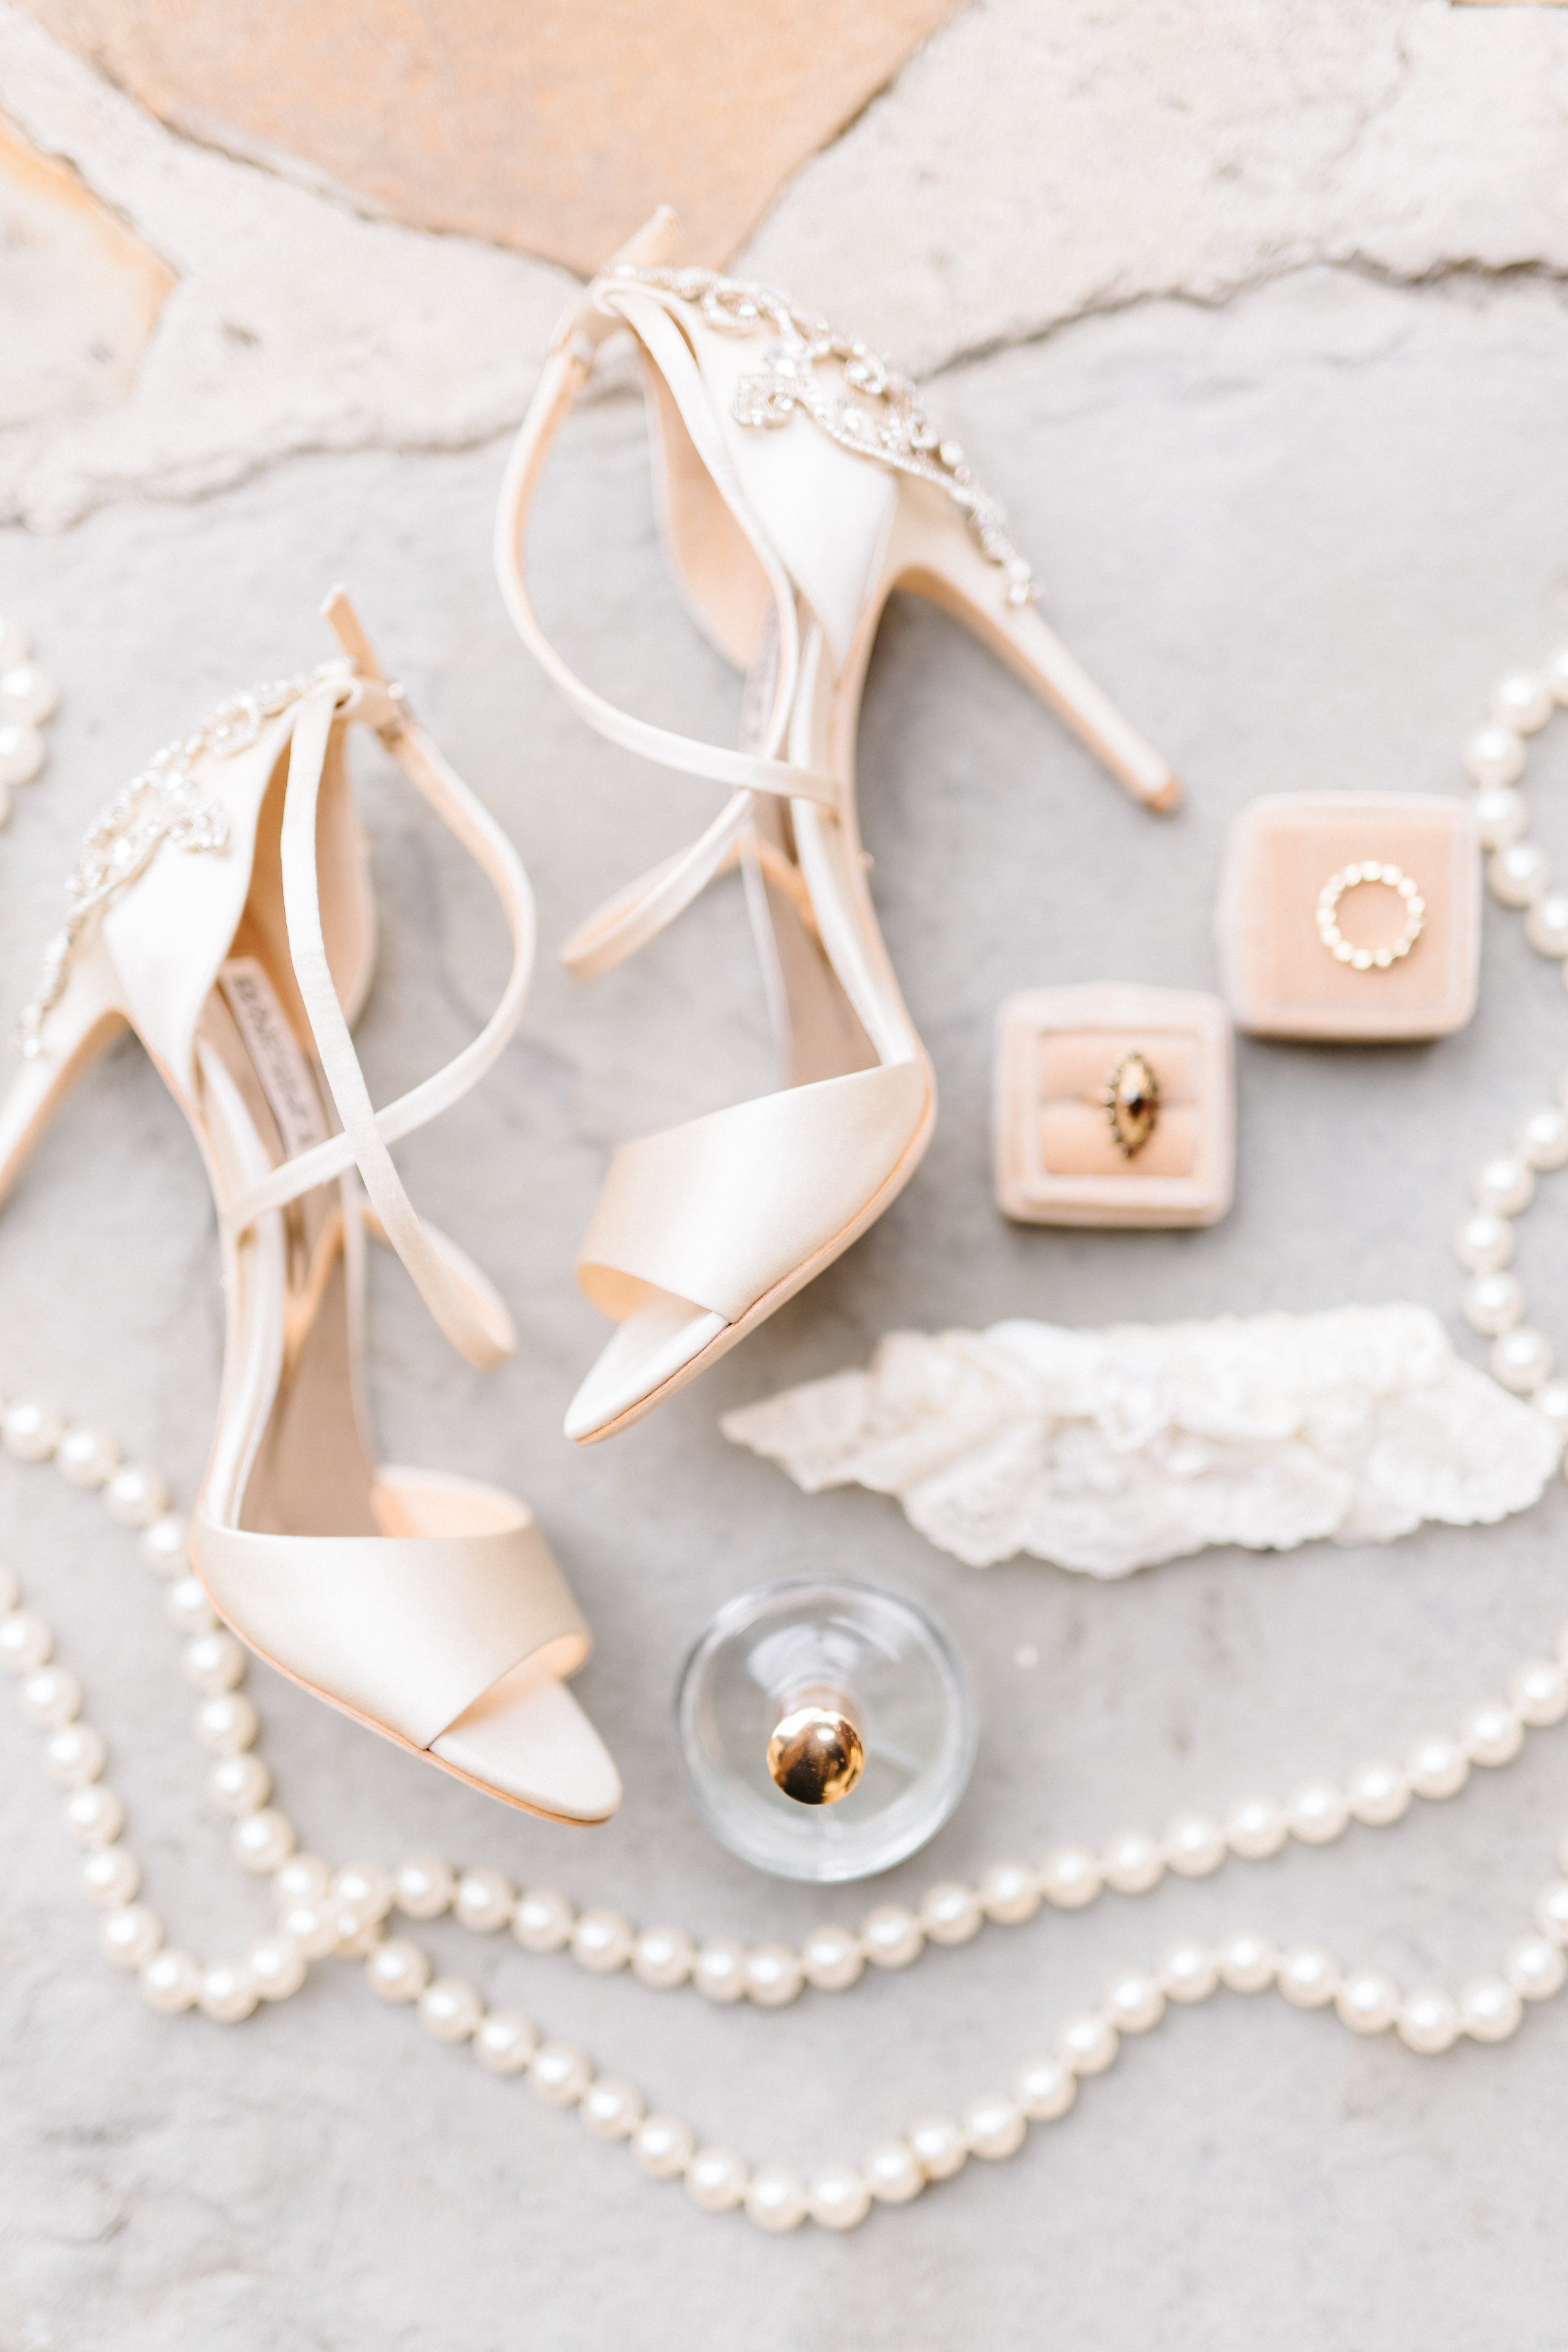 Satin, pearl, and lace wedding details  Orlando Wedding Planner Blue Ribbon Weddings  Orlando Wedding Photographer Emma Shourds Photography  Wedding Ceremony at Bell Tower at Bella Collina  Wedding Reception in Atrium at Bella Collina